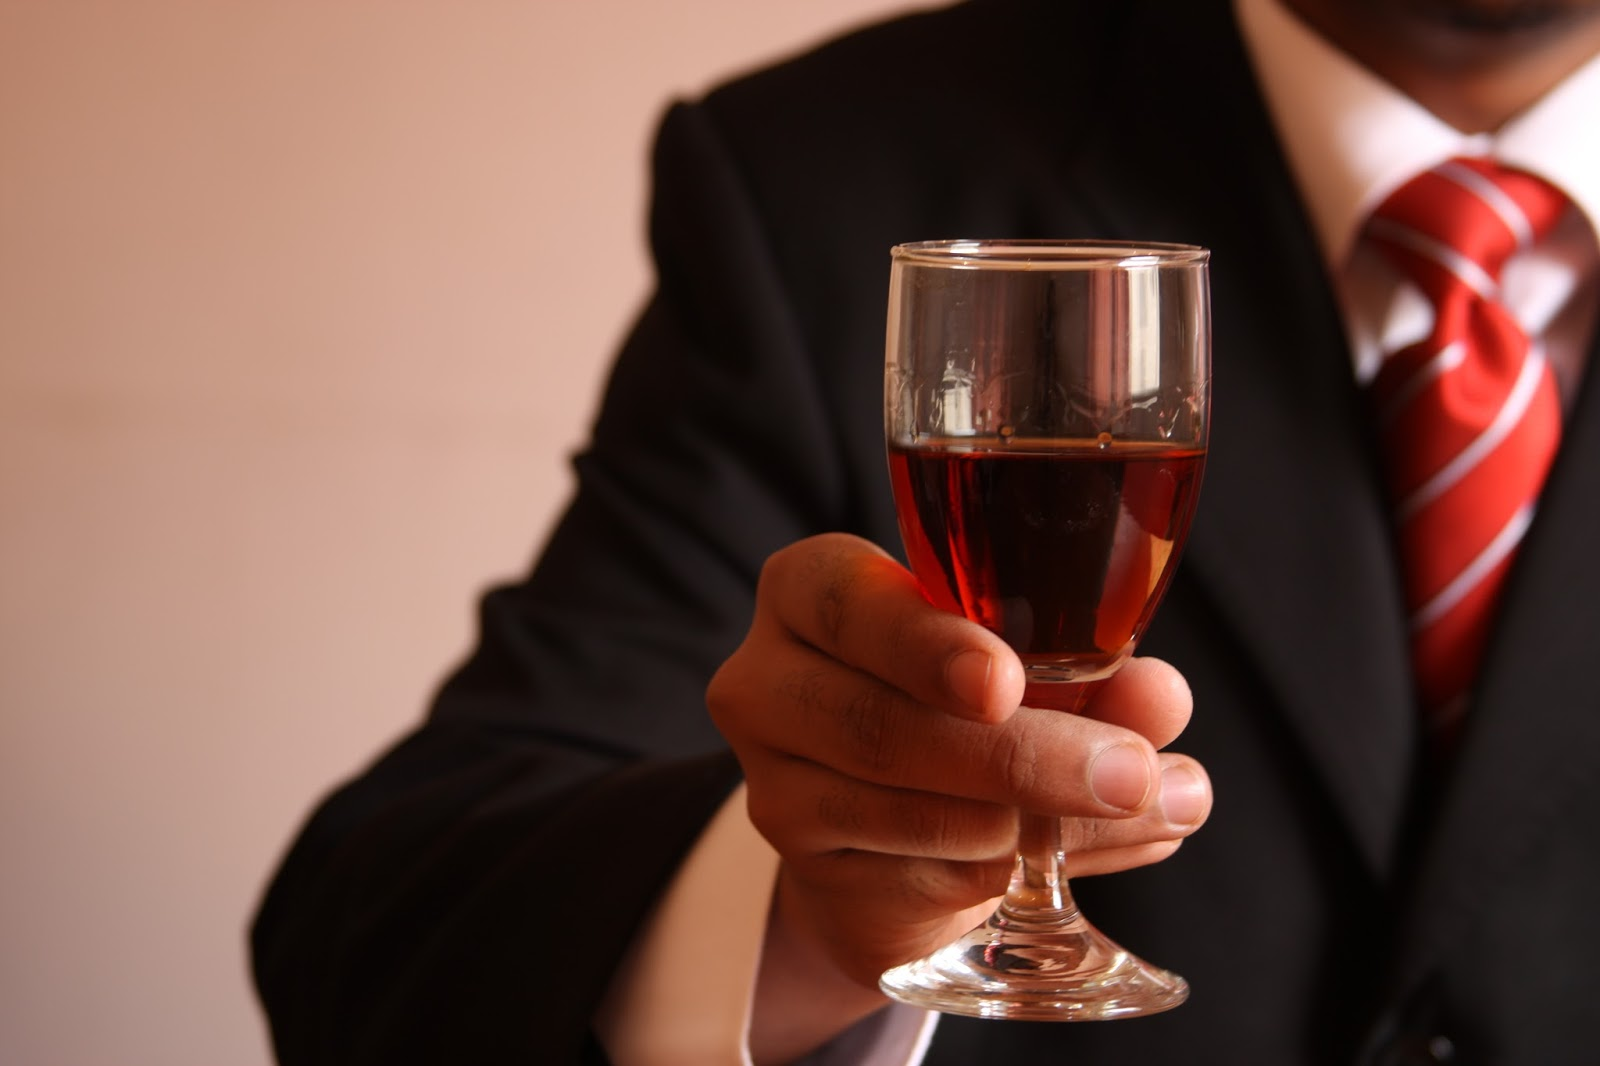 australian recommended guidelines alcohol intake